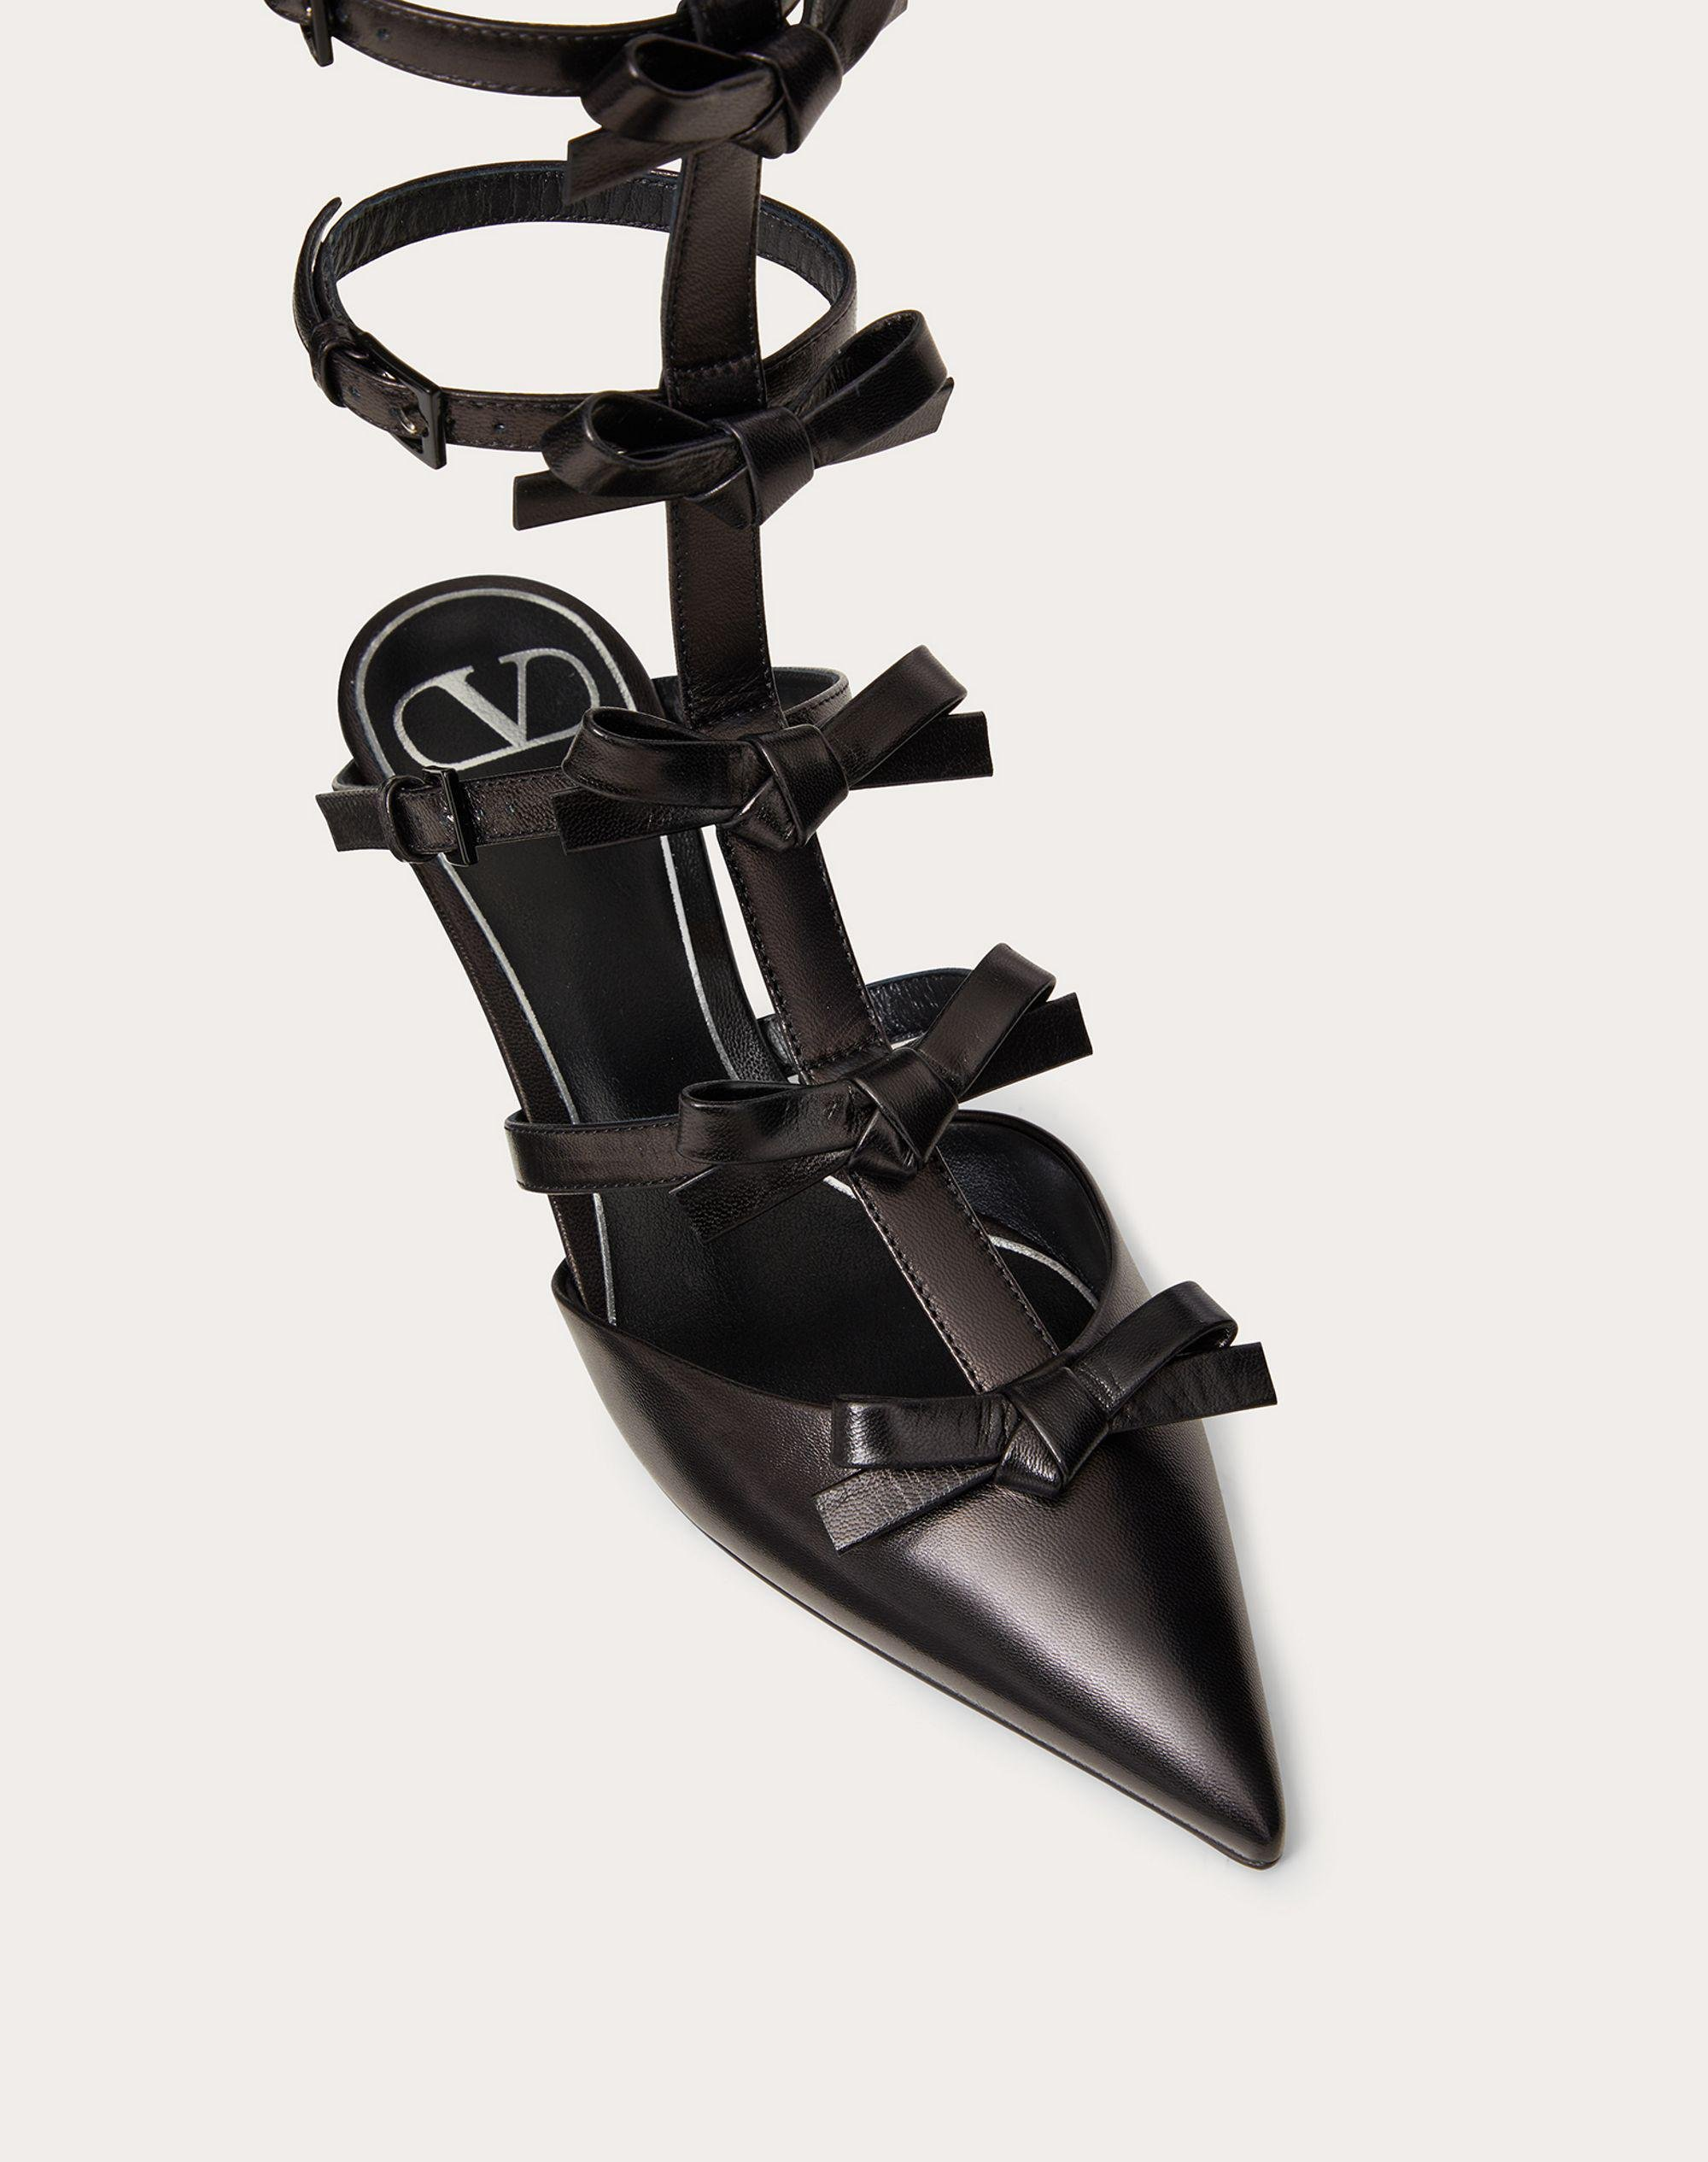 ANKLE STRAP PUMP WITH KIDSKIN FRENCH BOWS  40 MM 4